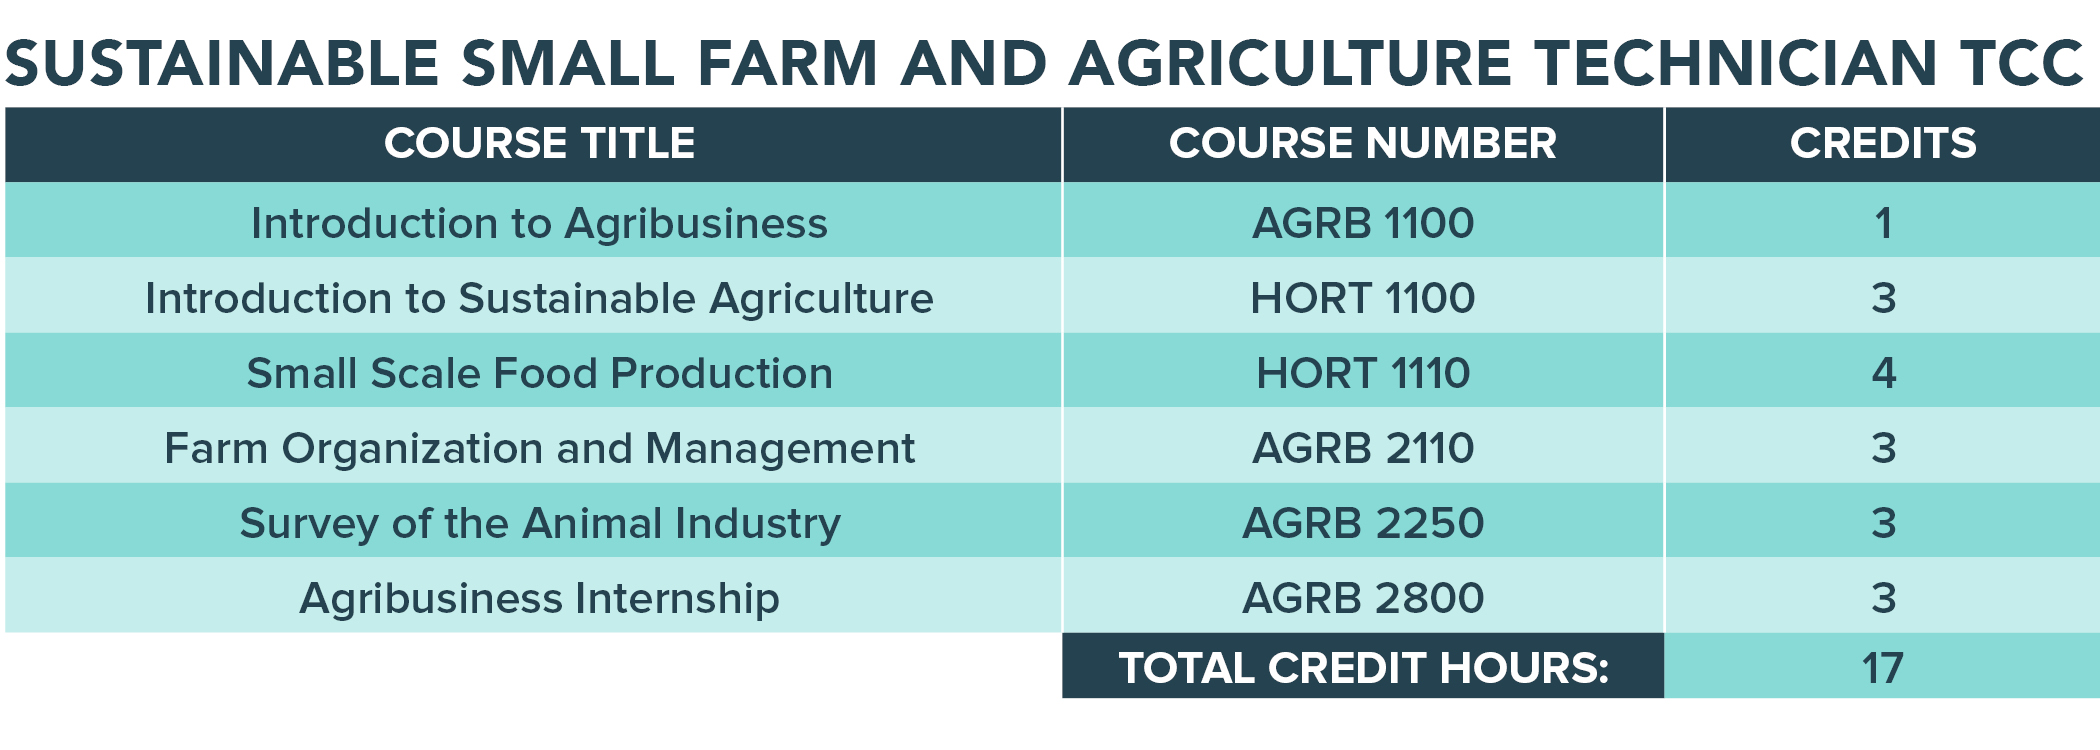 Sustainable Small Farm and Agriculture Technician TCC program chart.